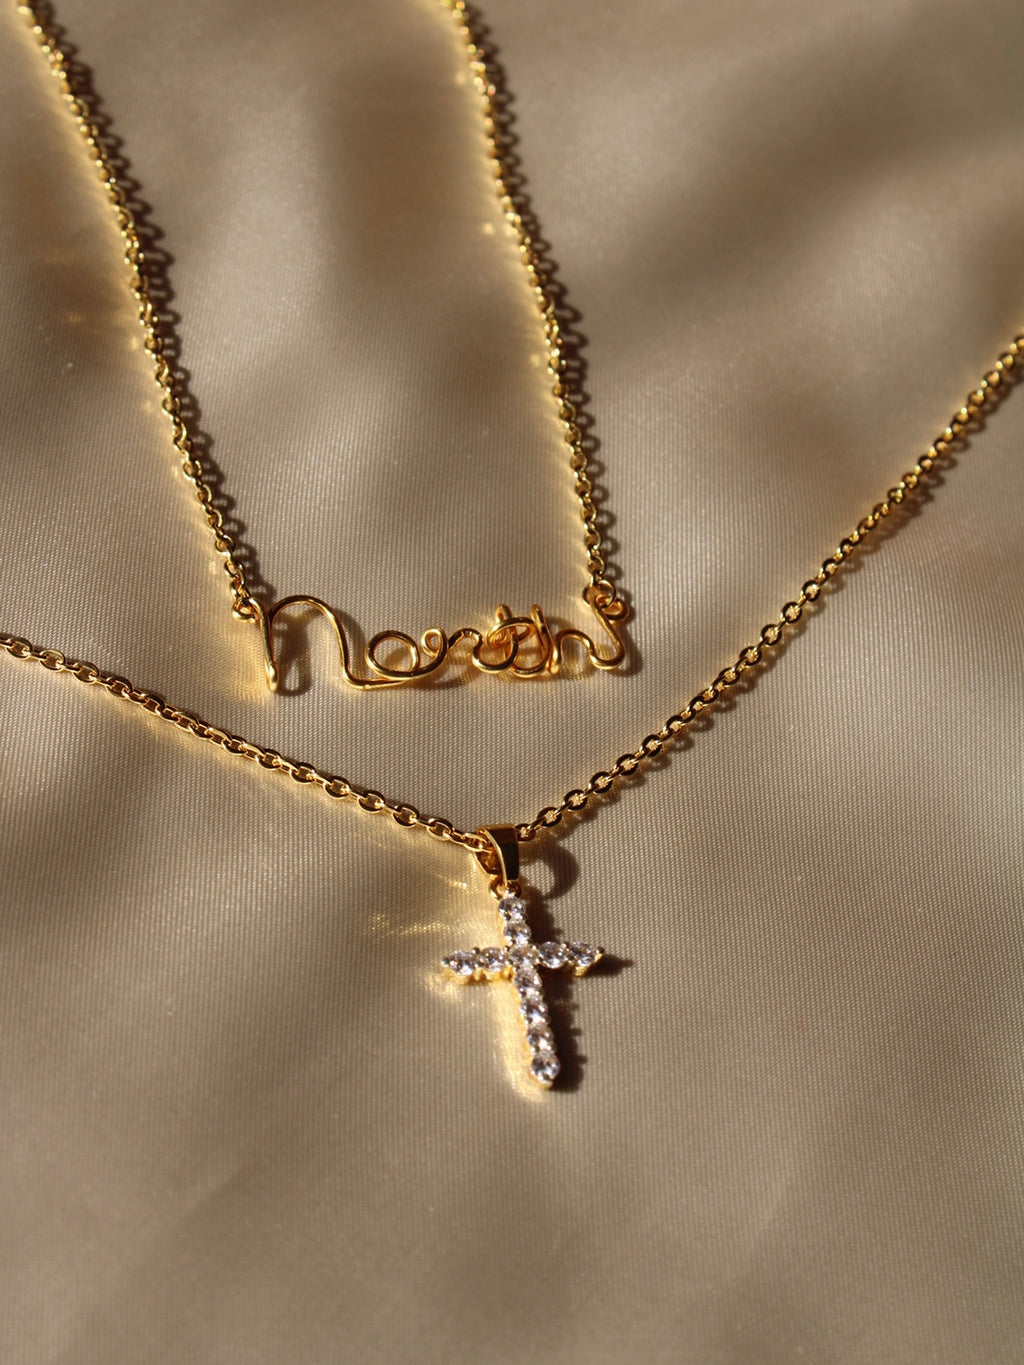 CUSTOM NAME + CRYSTAL CROSS NECKLACE SET